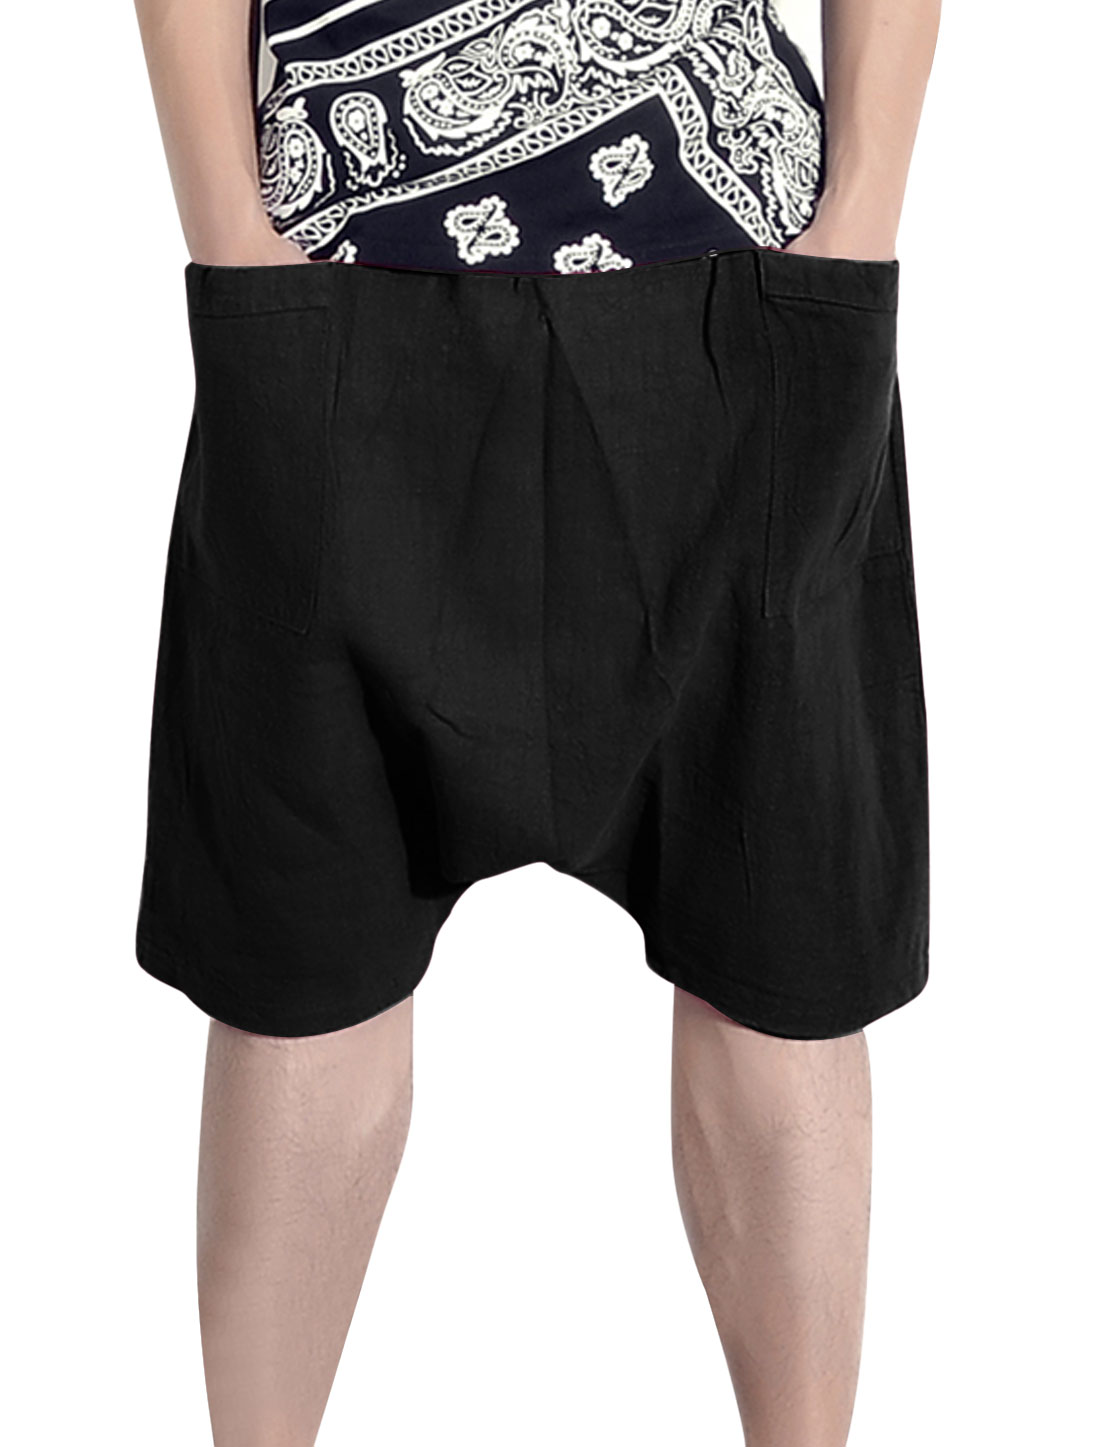 Men Elastic Waist Two Front Pockets Casual Harem Shorts Black W30